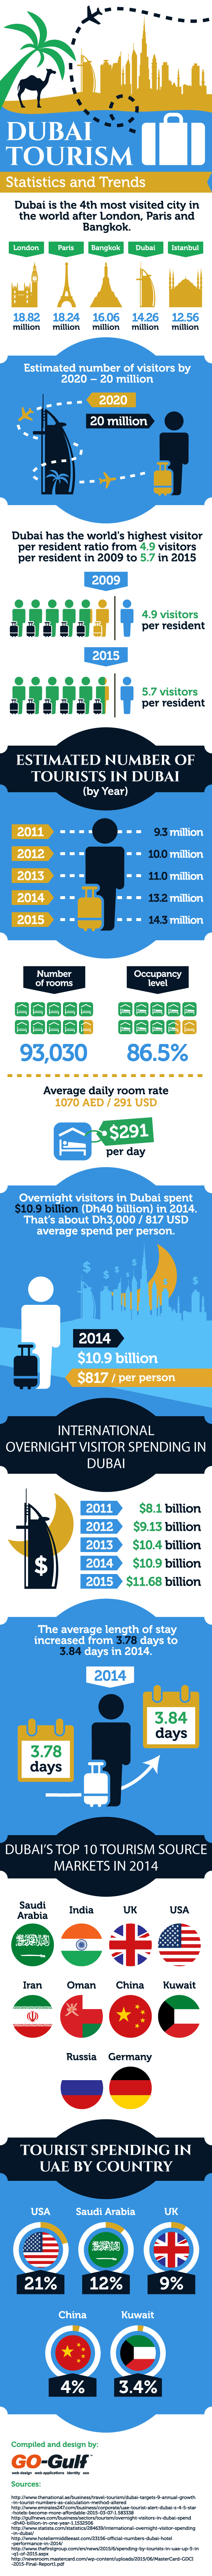 Dubai Tourism Statistics and Trends